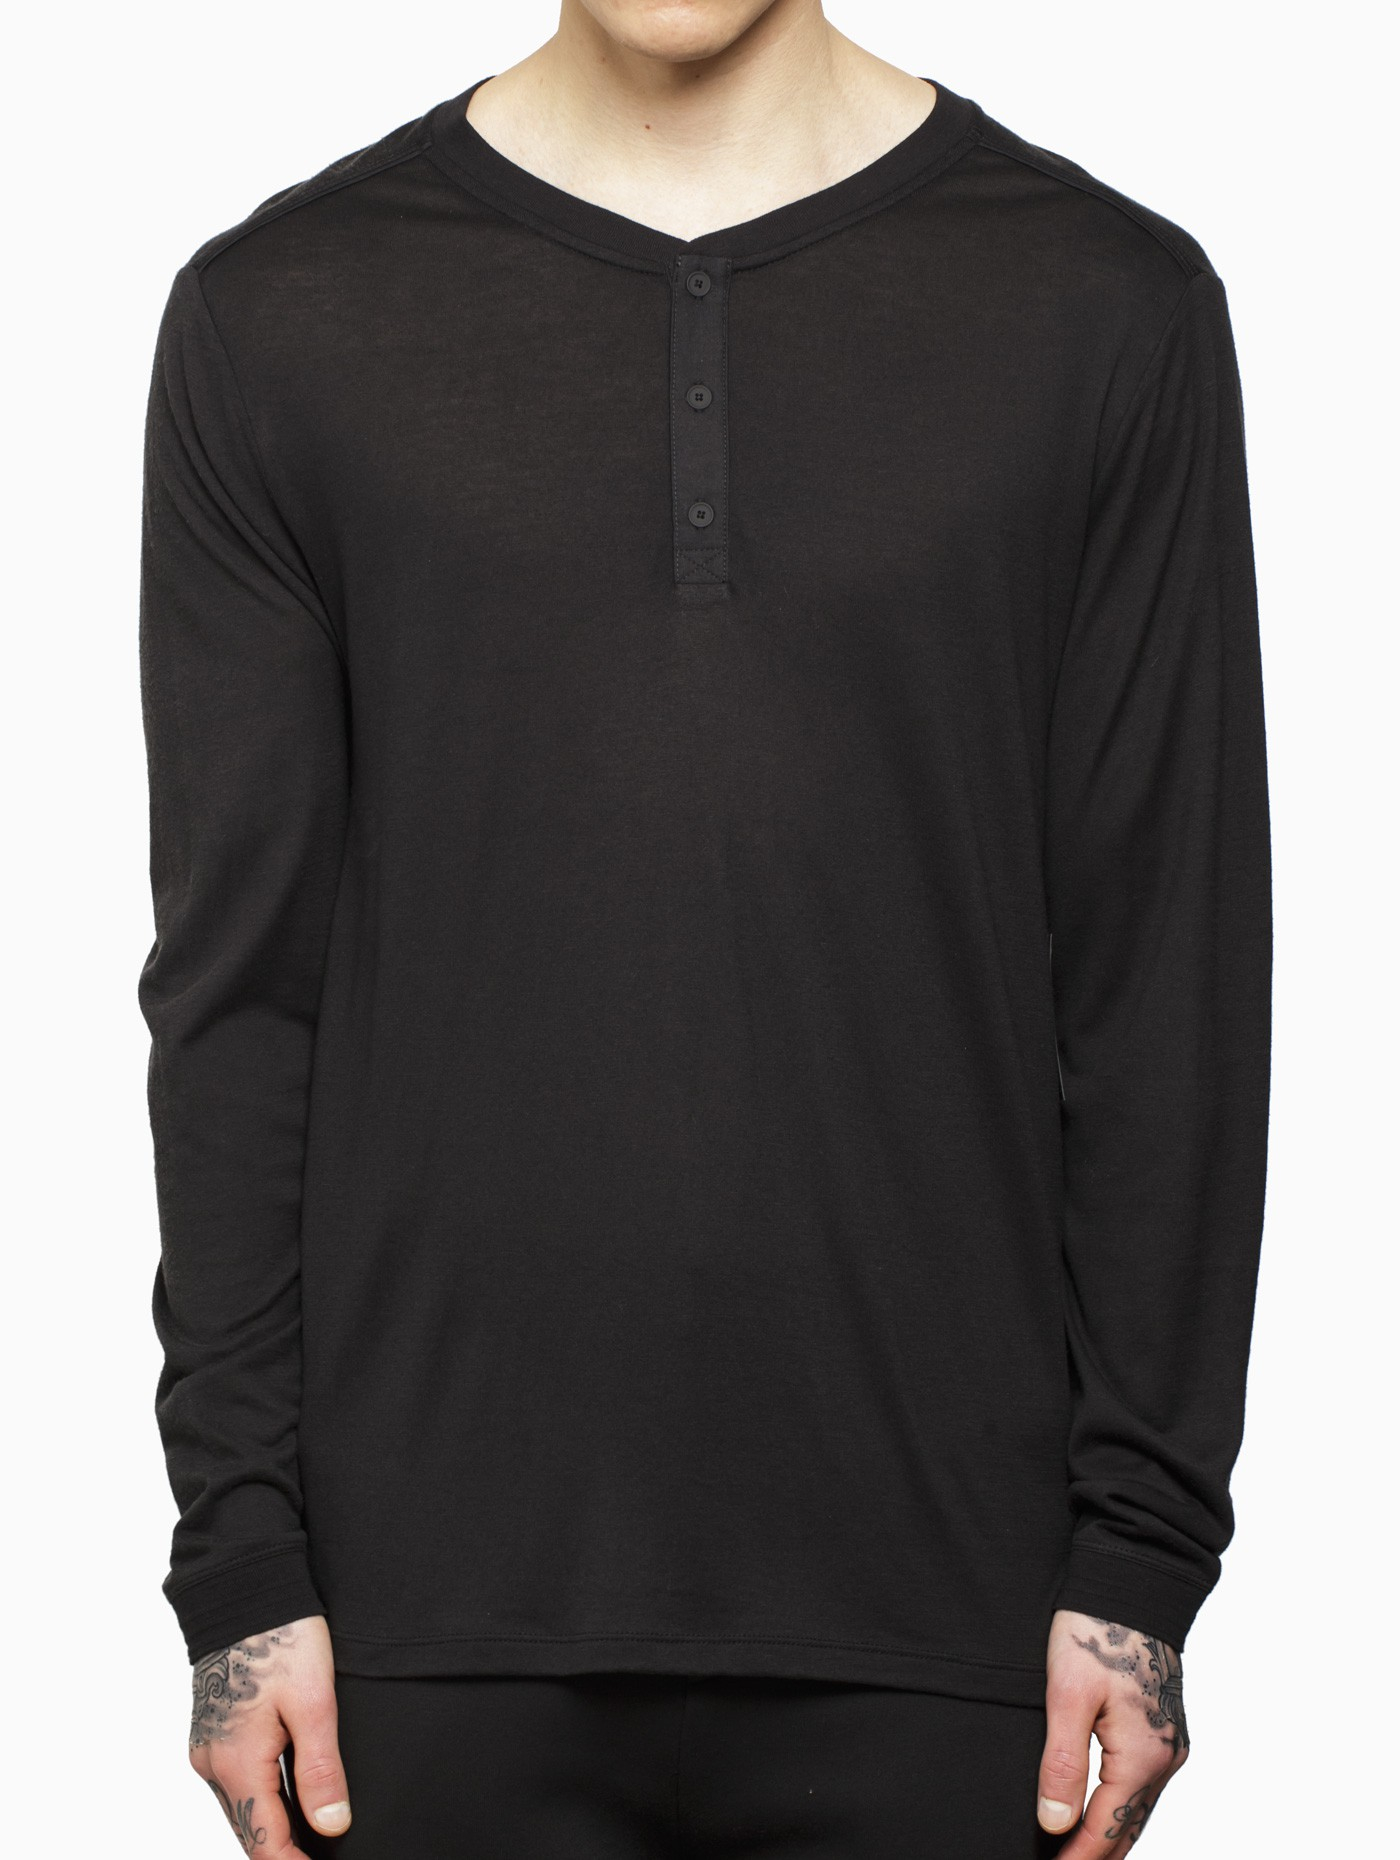 Vrients Long Sleeve Henley Top In Black For Men Lyst